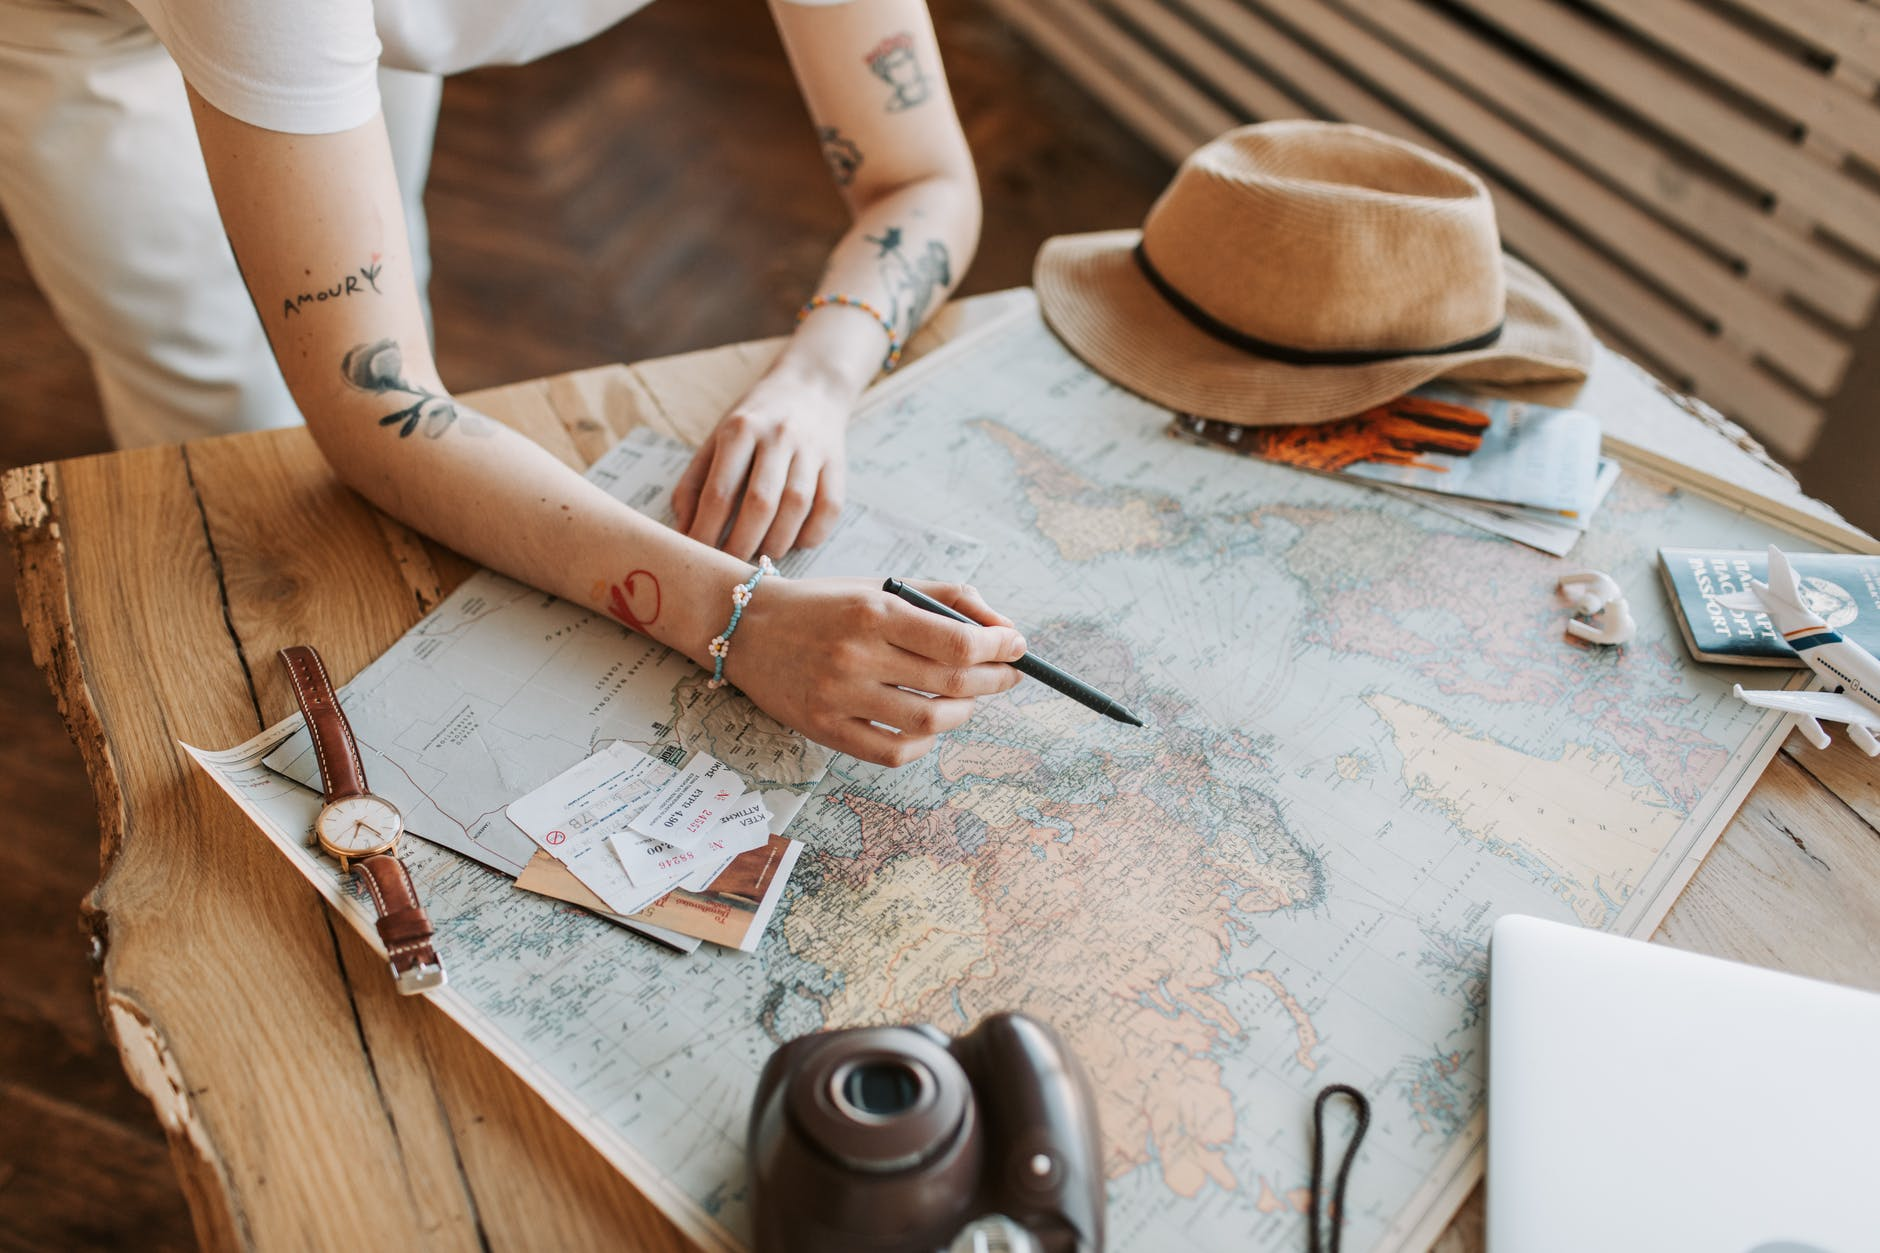 planning a vacation can be incredibly stressful